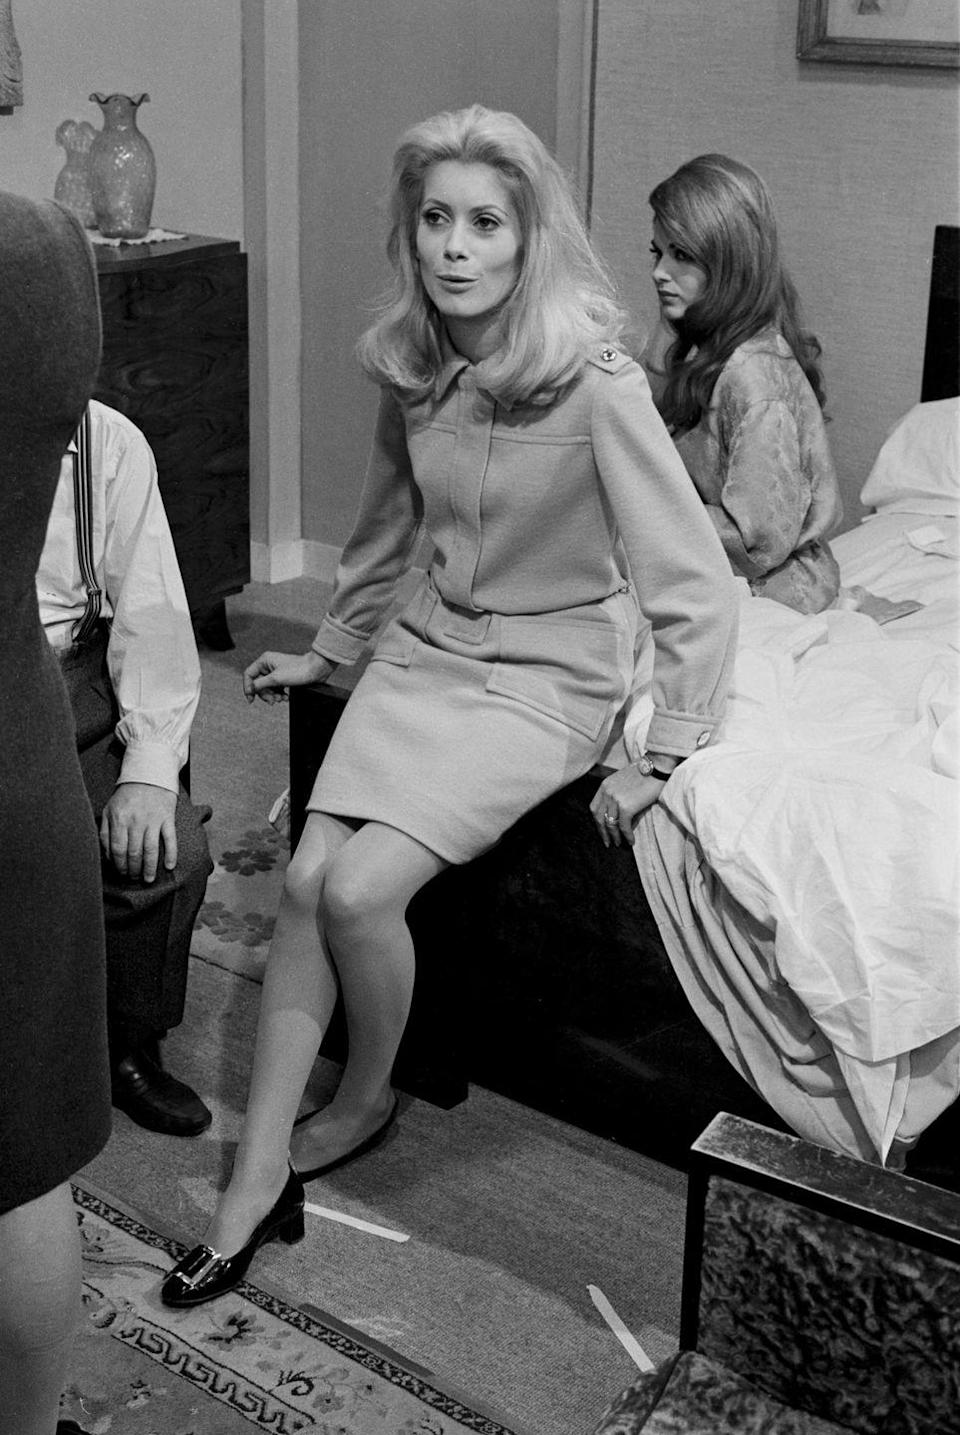 """<p>Catherine Deneuve's patent leather Roger Vivier buckle shoes are so iconic, they were <a href=""""https://www.wsj.com/articles/back-by-popular-demand-the-shoes-catherine-deneuve-wore-in-belle-de-jour-1501782795"""" rel=""""nofollow noopener"""" target=""""_blank"""" data-ylk=""""slk:re-issued in 2017"""" class=""""link rapid-noclick-resp"""">re-issued in 2017</a> in honor of the movie's 50th anniversary.</p>"""